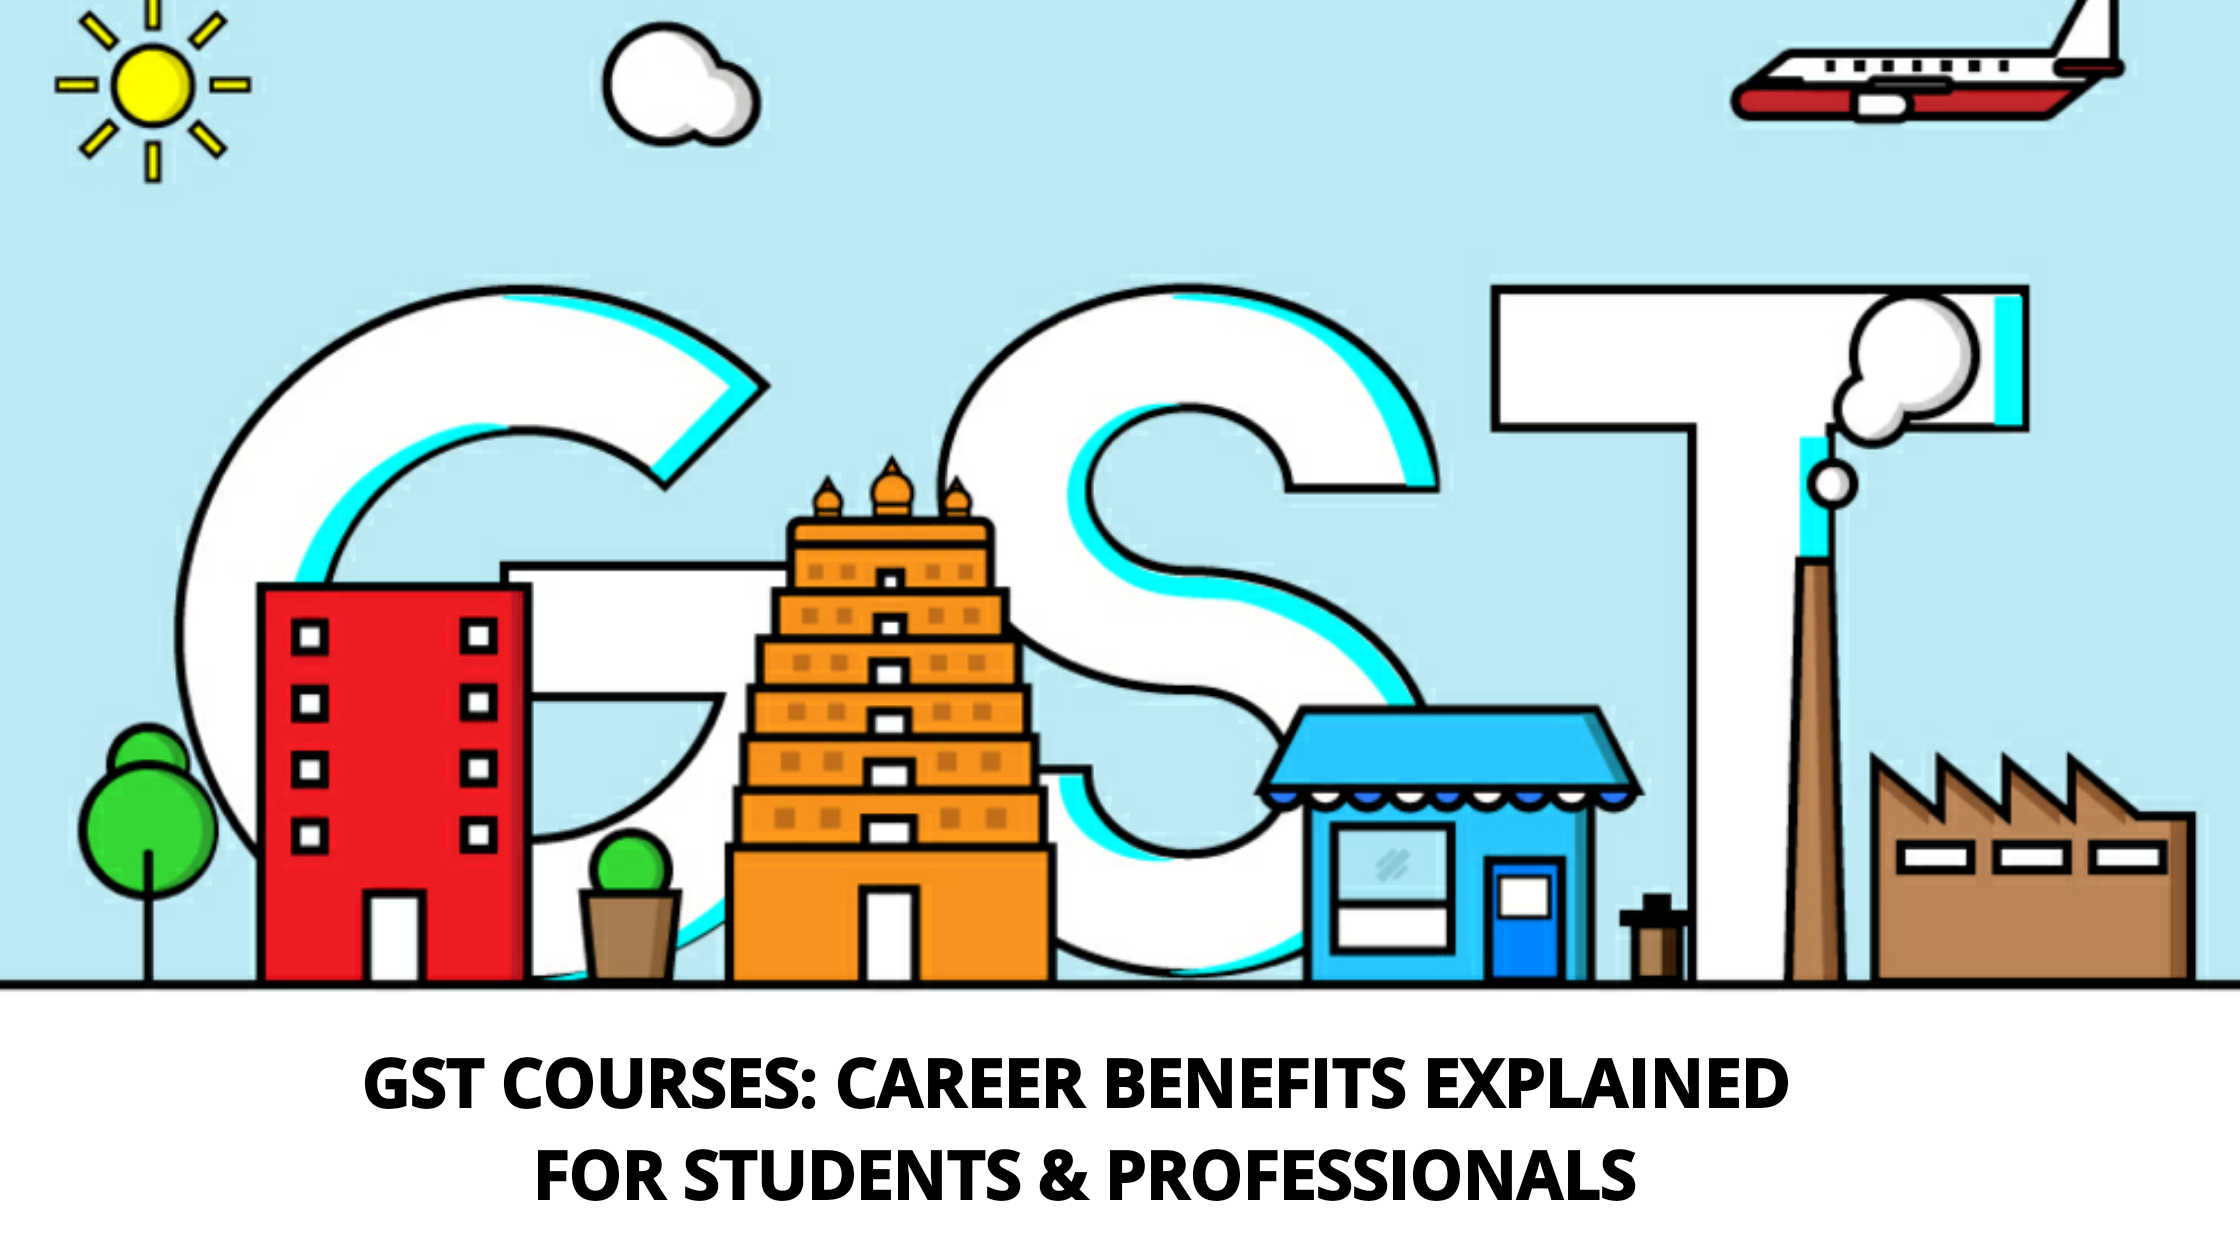 GST Courses: Career Benefits Explained For Students & Professionals